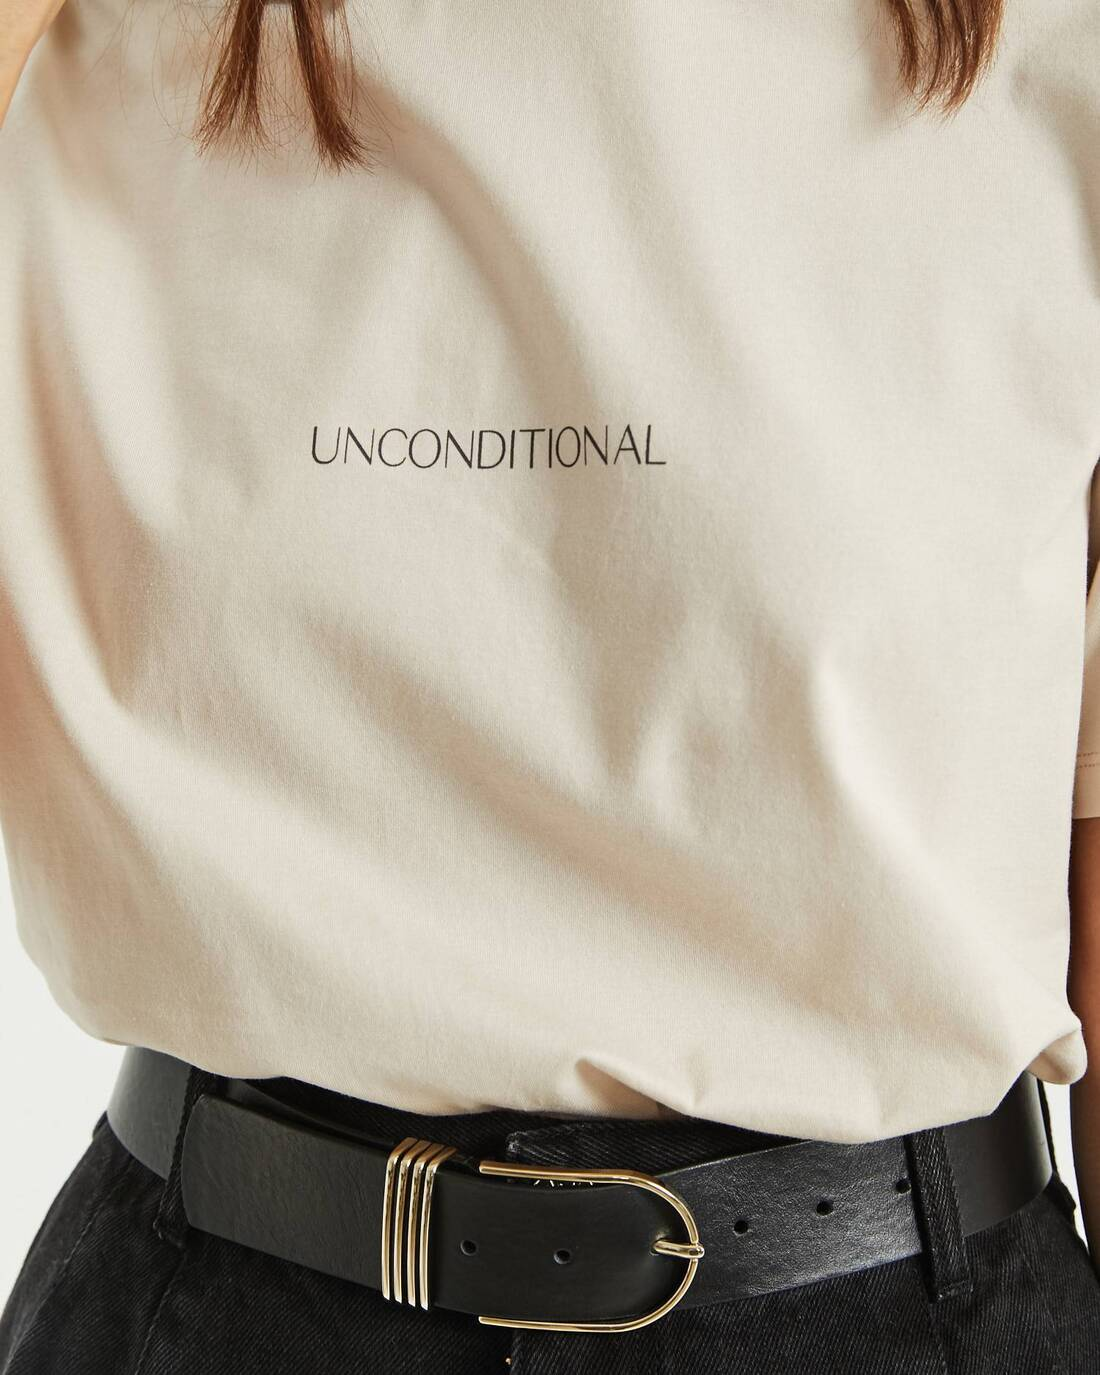 Unconditional t-shirt